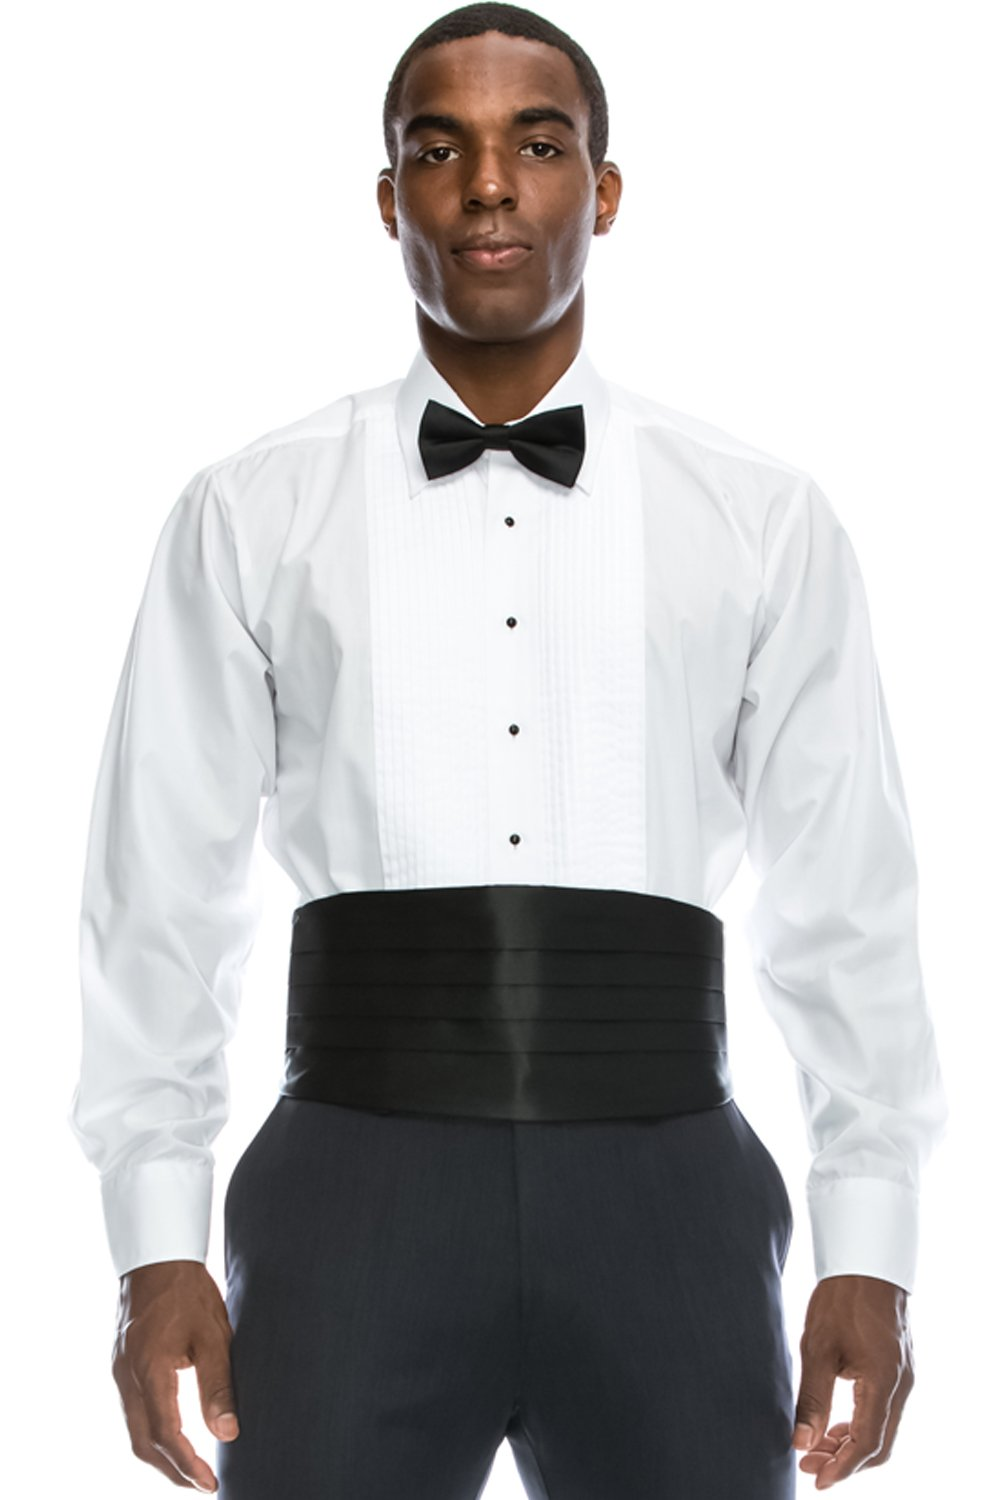 JC DISTRO Mens Formal Tuxedo Shirts Collection w/Big Size Regular Fit